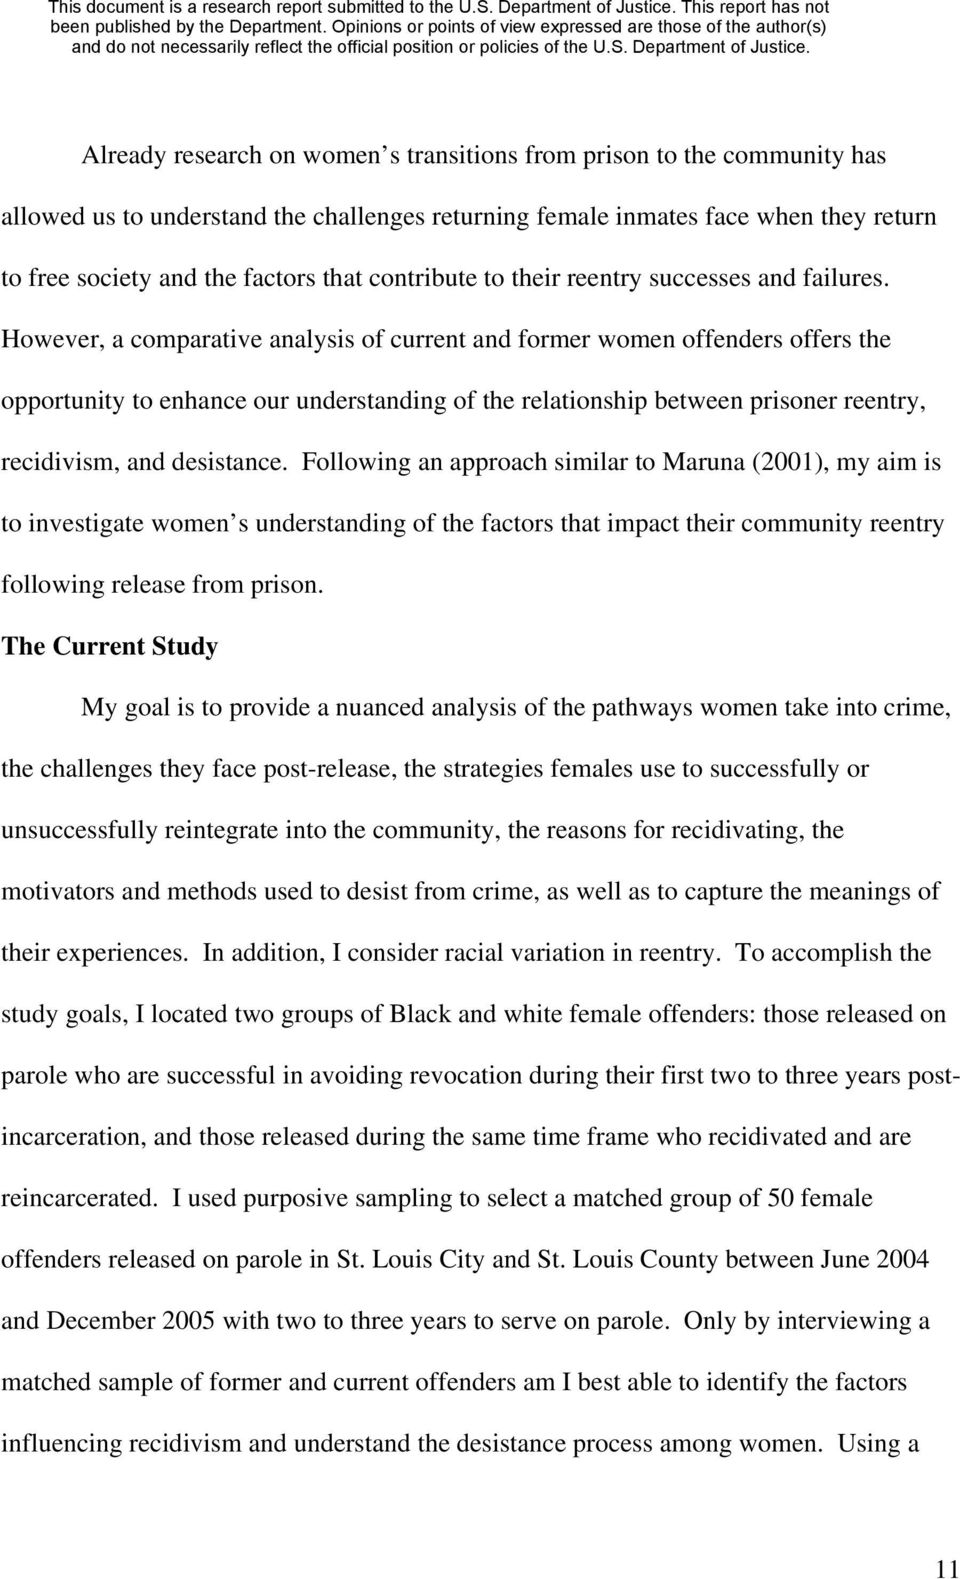 However, a comparative analysis of current and former women offenders offers the opportunity to enhance our understanding of the relationship between prisoner reentry, recidivism, and desistance.